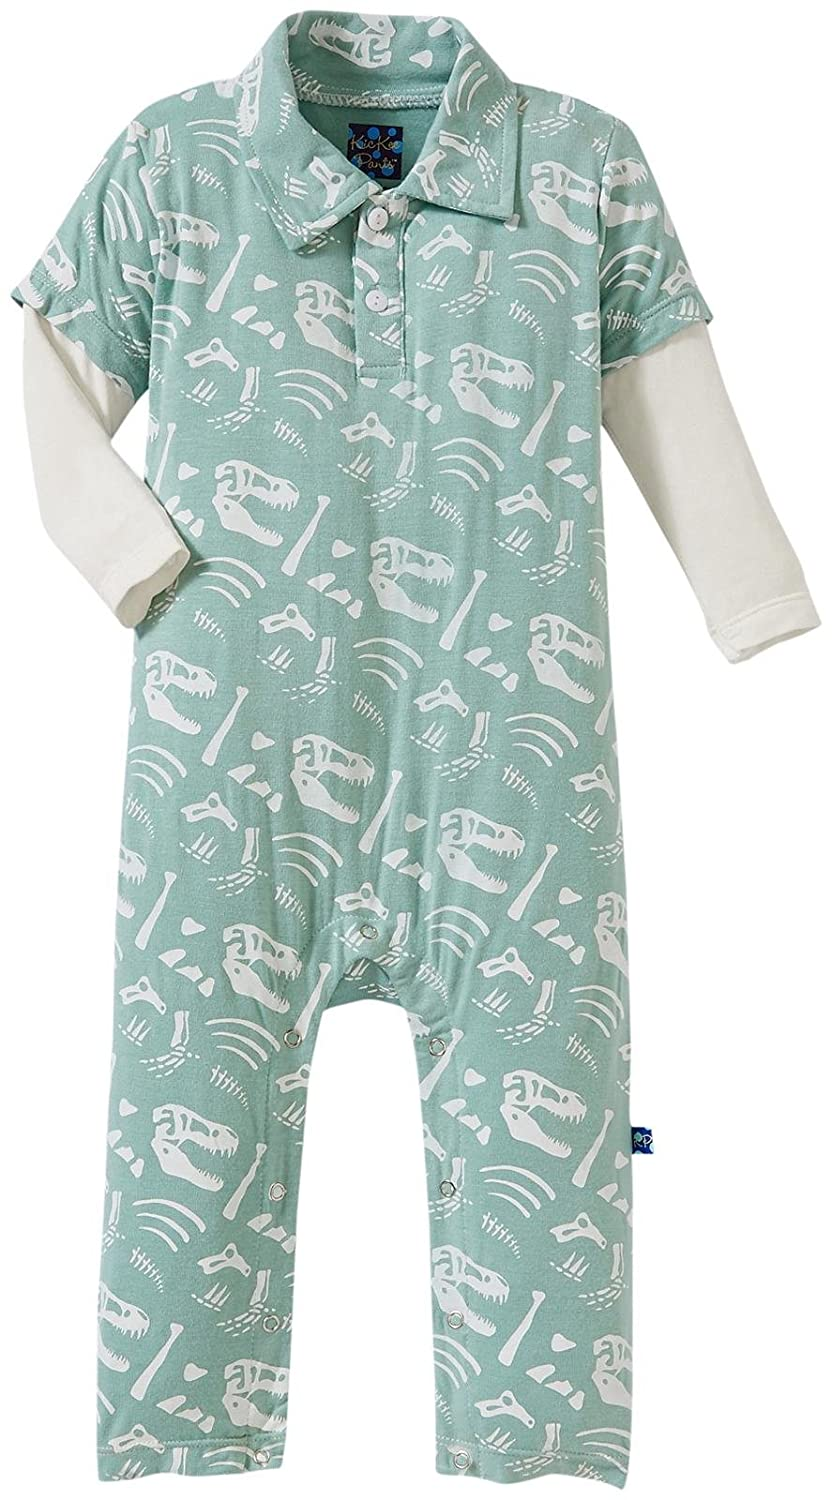 KicKee Pants SHIRT ベビーボーイズ B01678N39S Jade Bones 6 - 12 Months 6 - 12 Months|Jade Bones